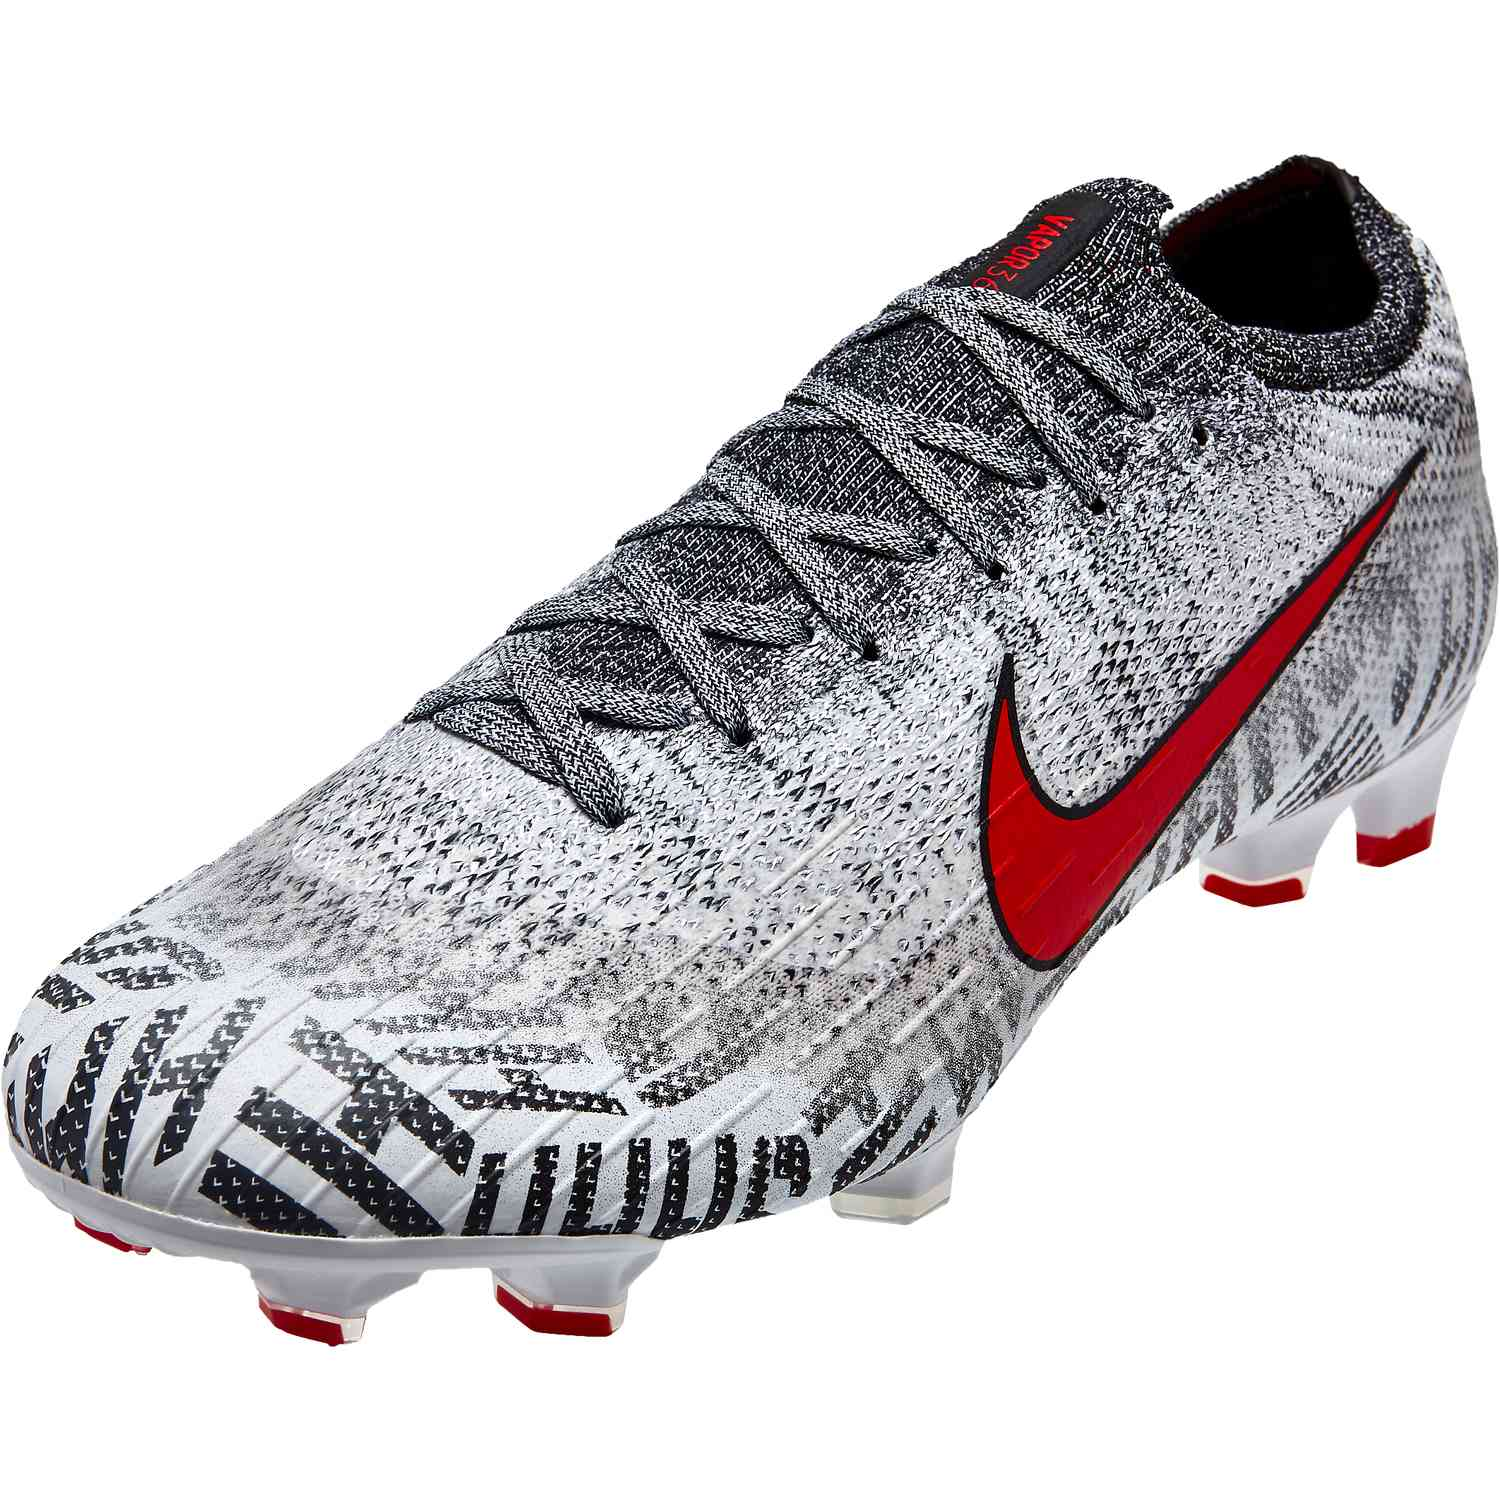 nike neymar jr mercurial vapor 12 elite fg white